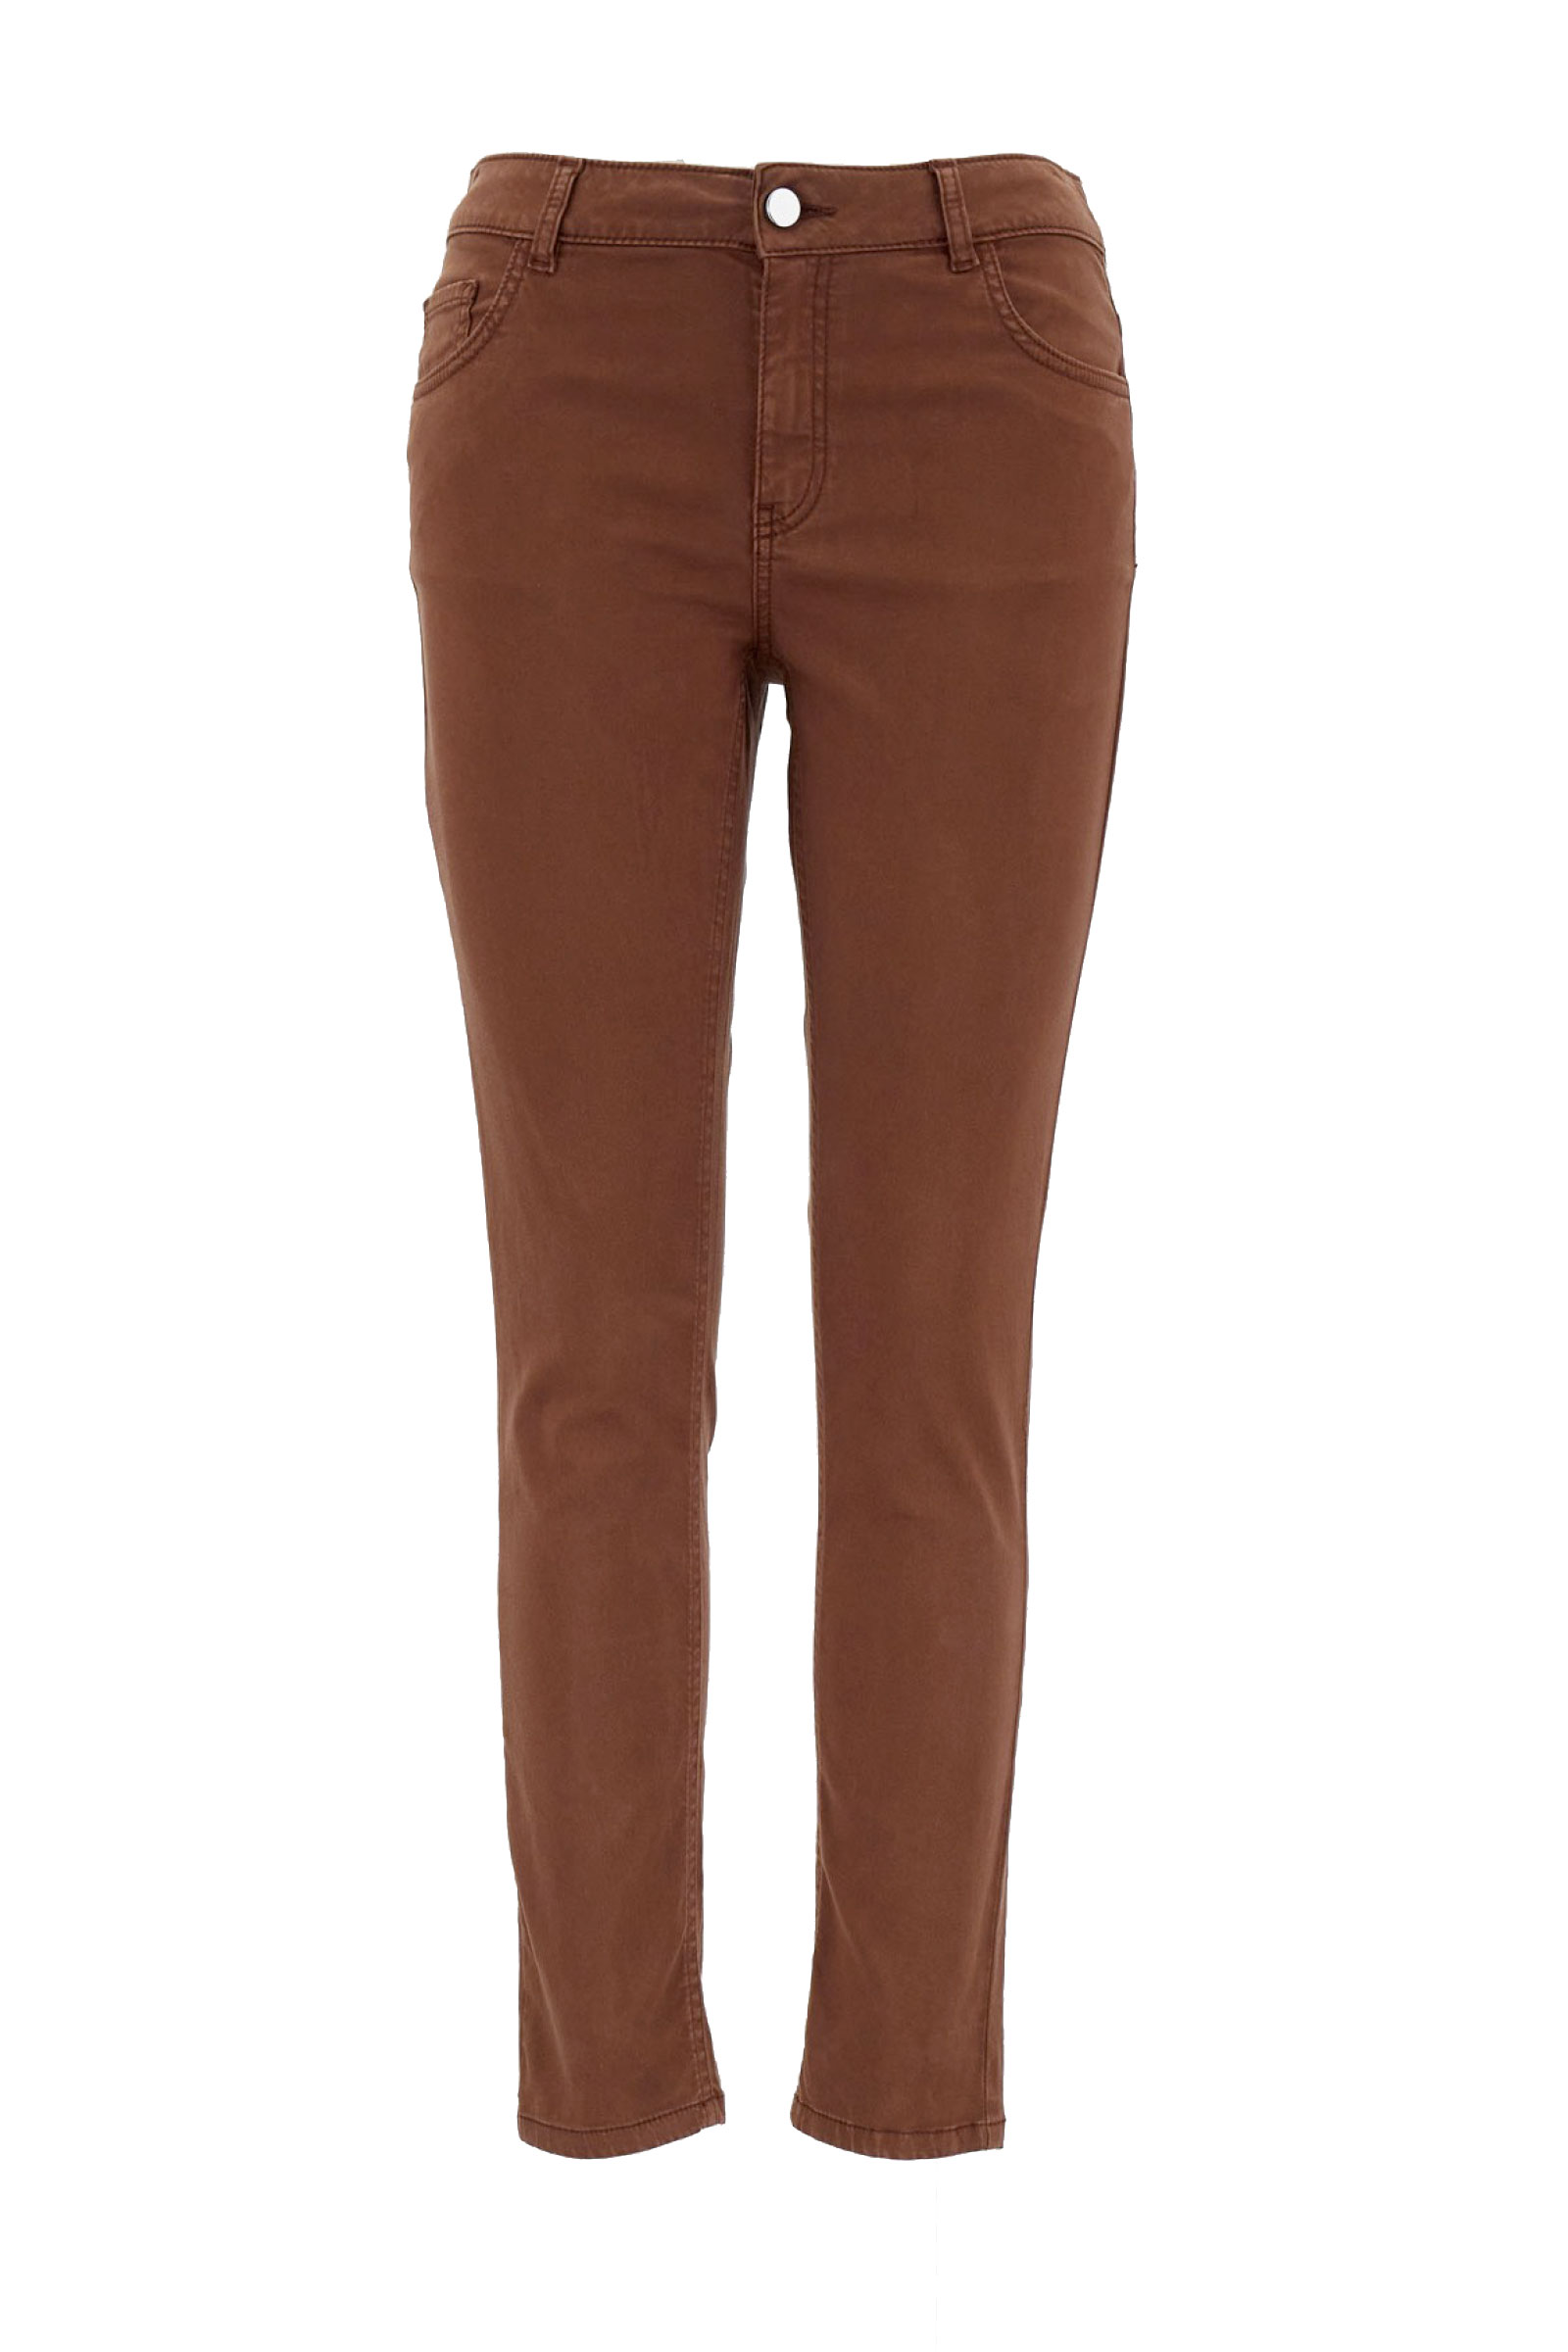 EMME MARELLA | Trousers | 51361618200002